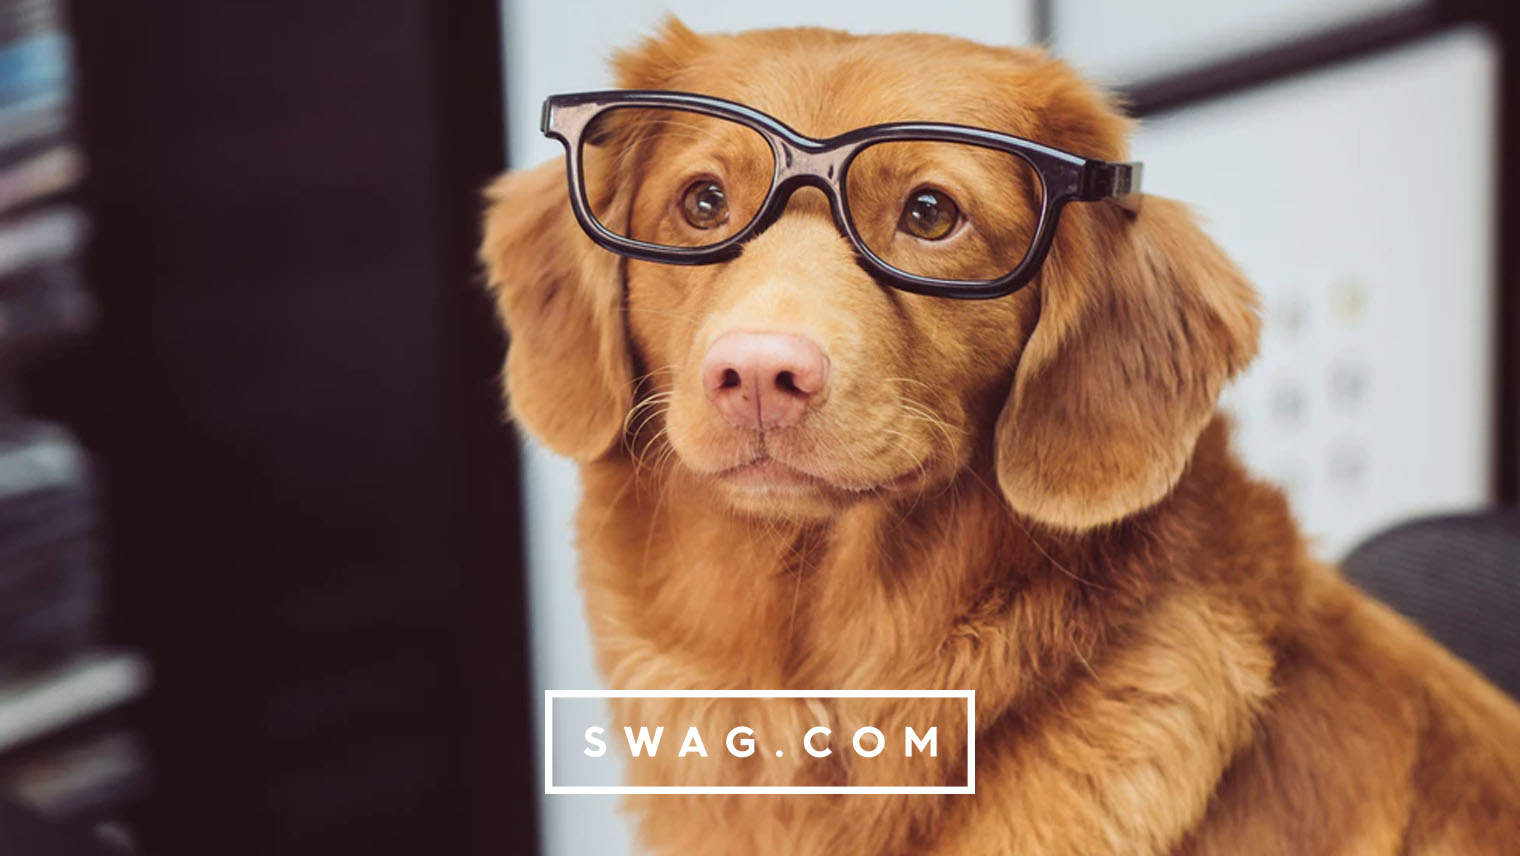 Pet-friendly swag